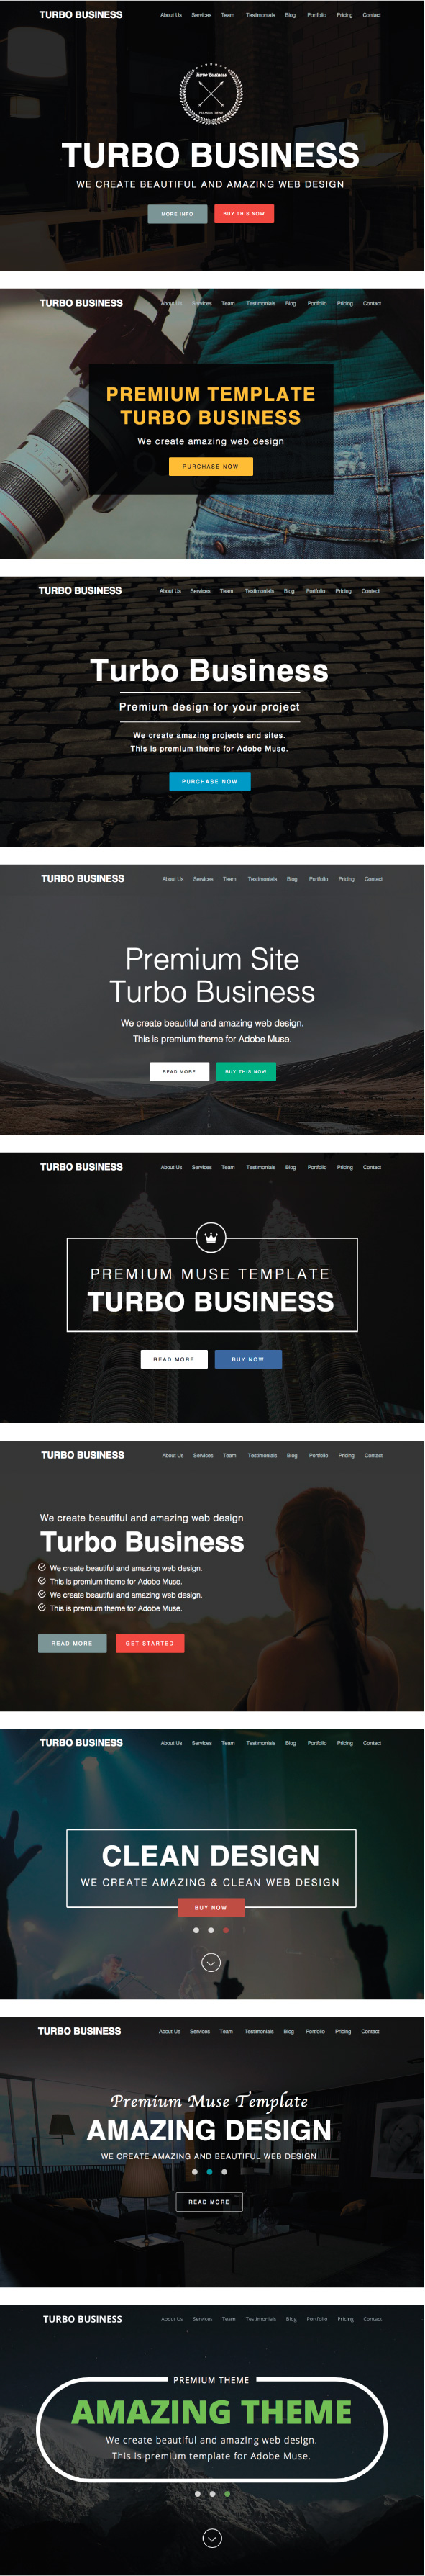 Turbo Business - Premium Muse Template - 1